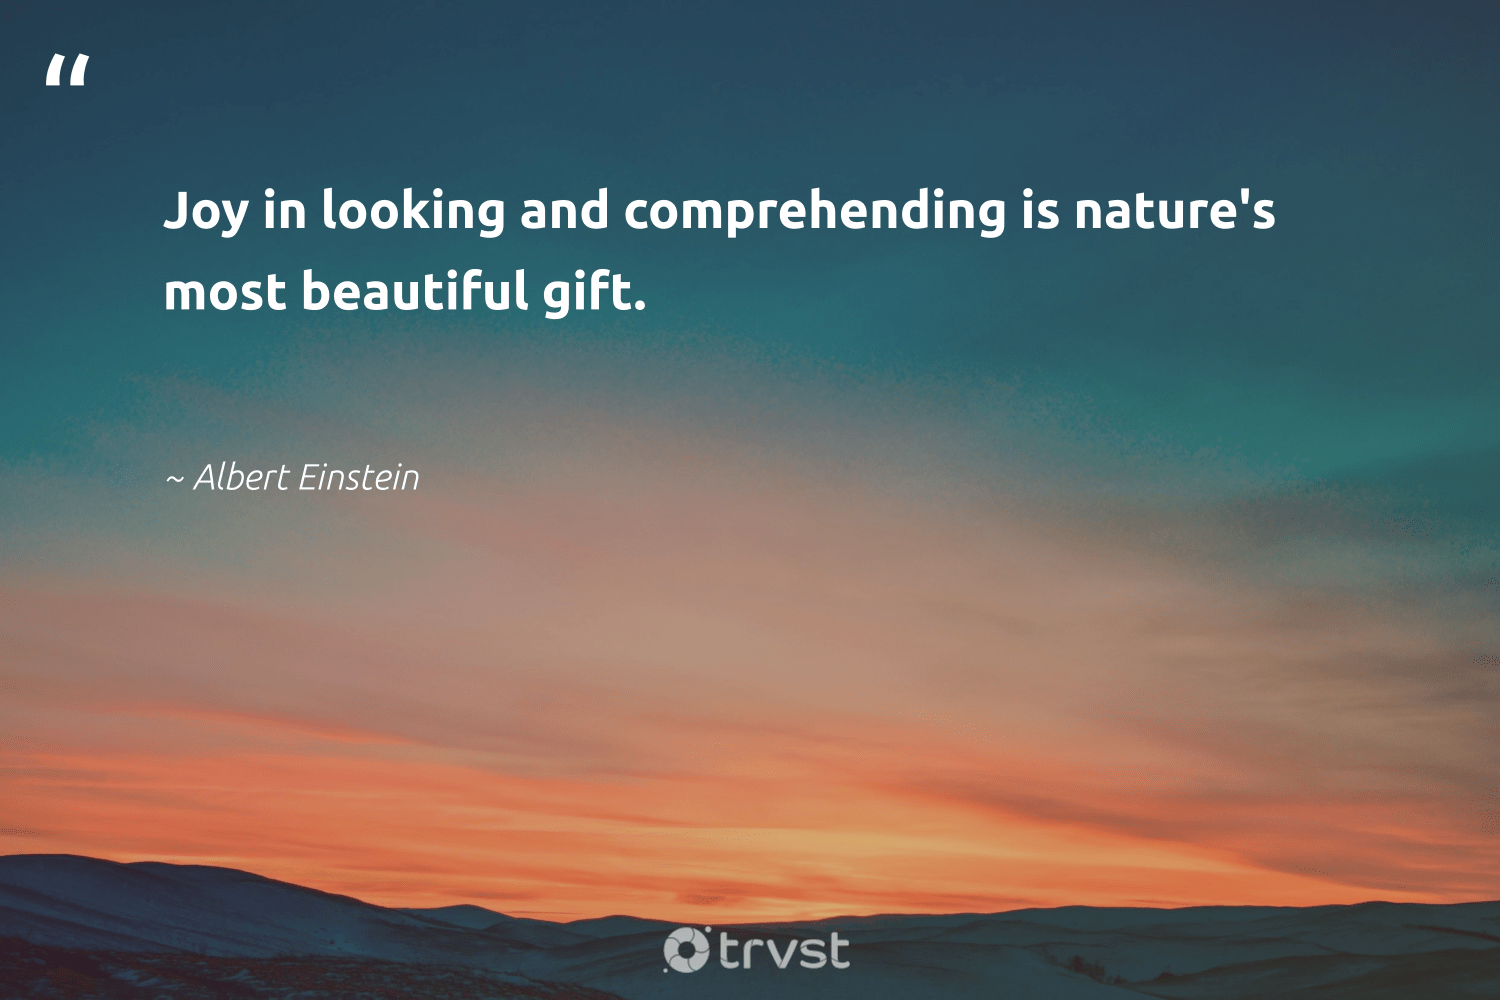 """""""Joy in looking and comprehending is nature's most beautiful gift.""""  - Albert Einstein #trvst #quotes #eco #ecoconscious #sustainability #bethechange #earth #thinkgreen #giveback #gogreen #natureseekers #beinspired"""